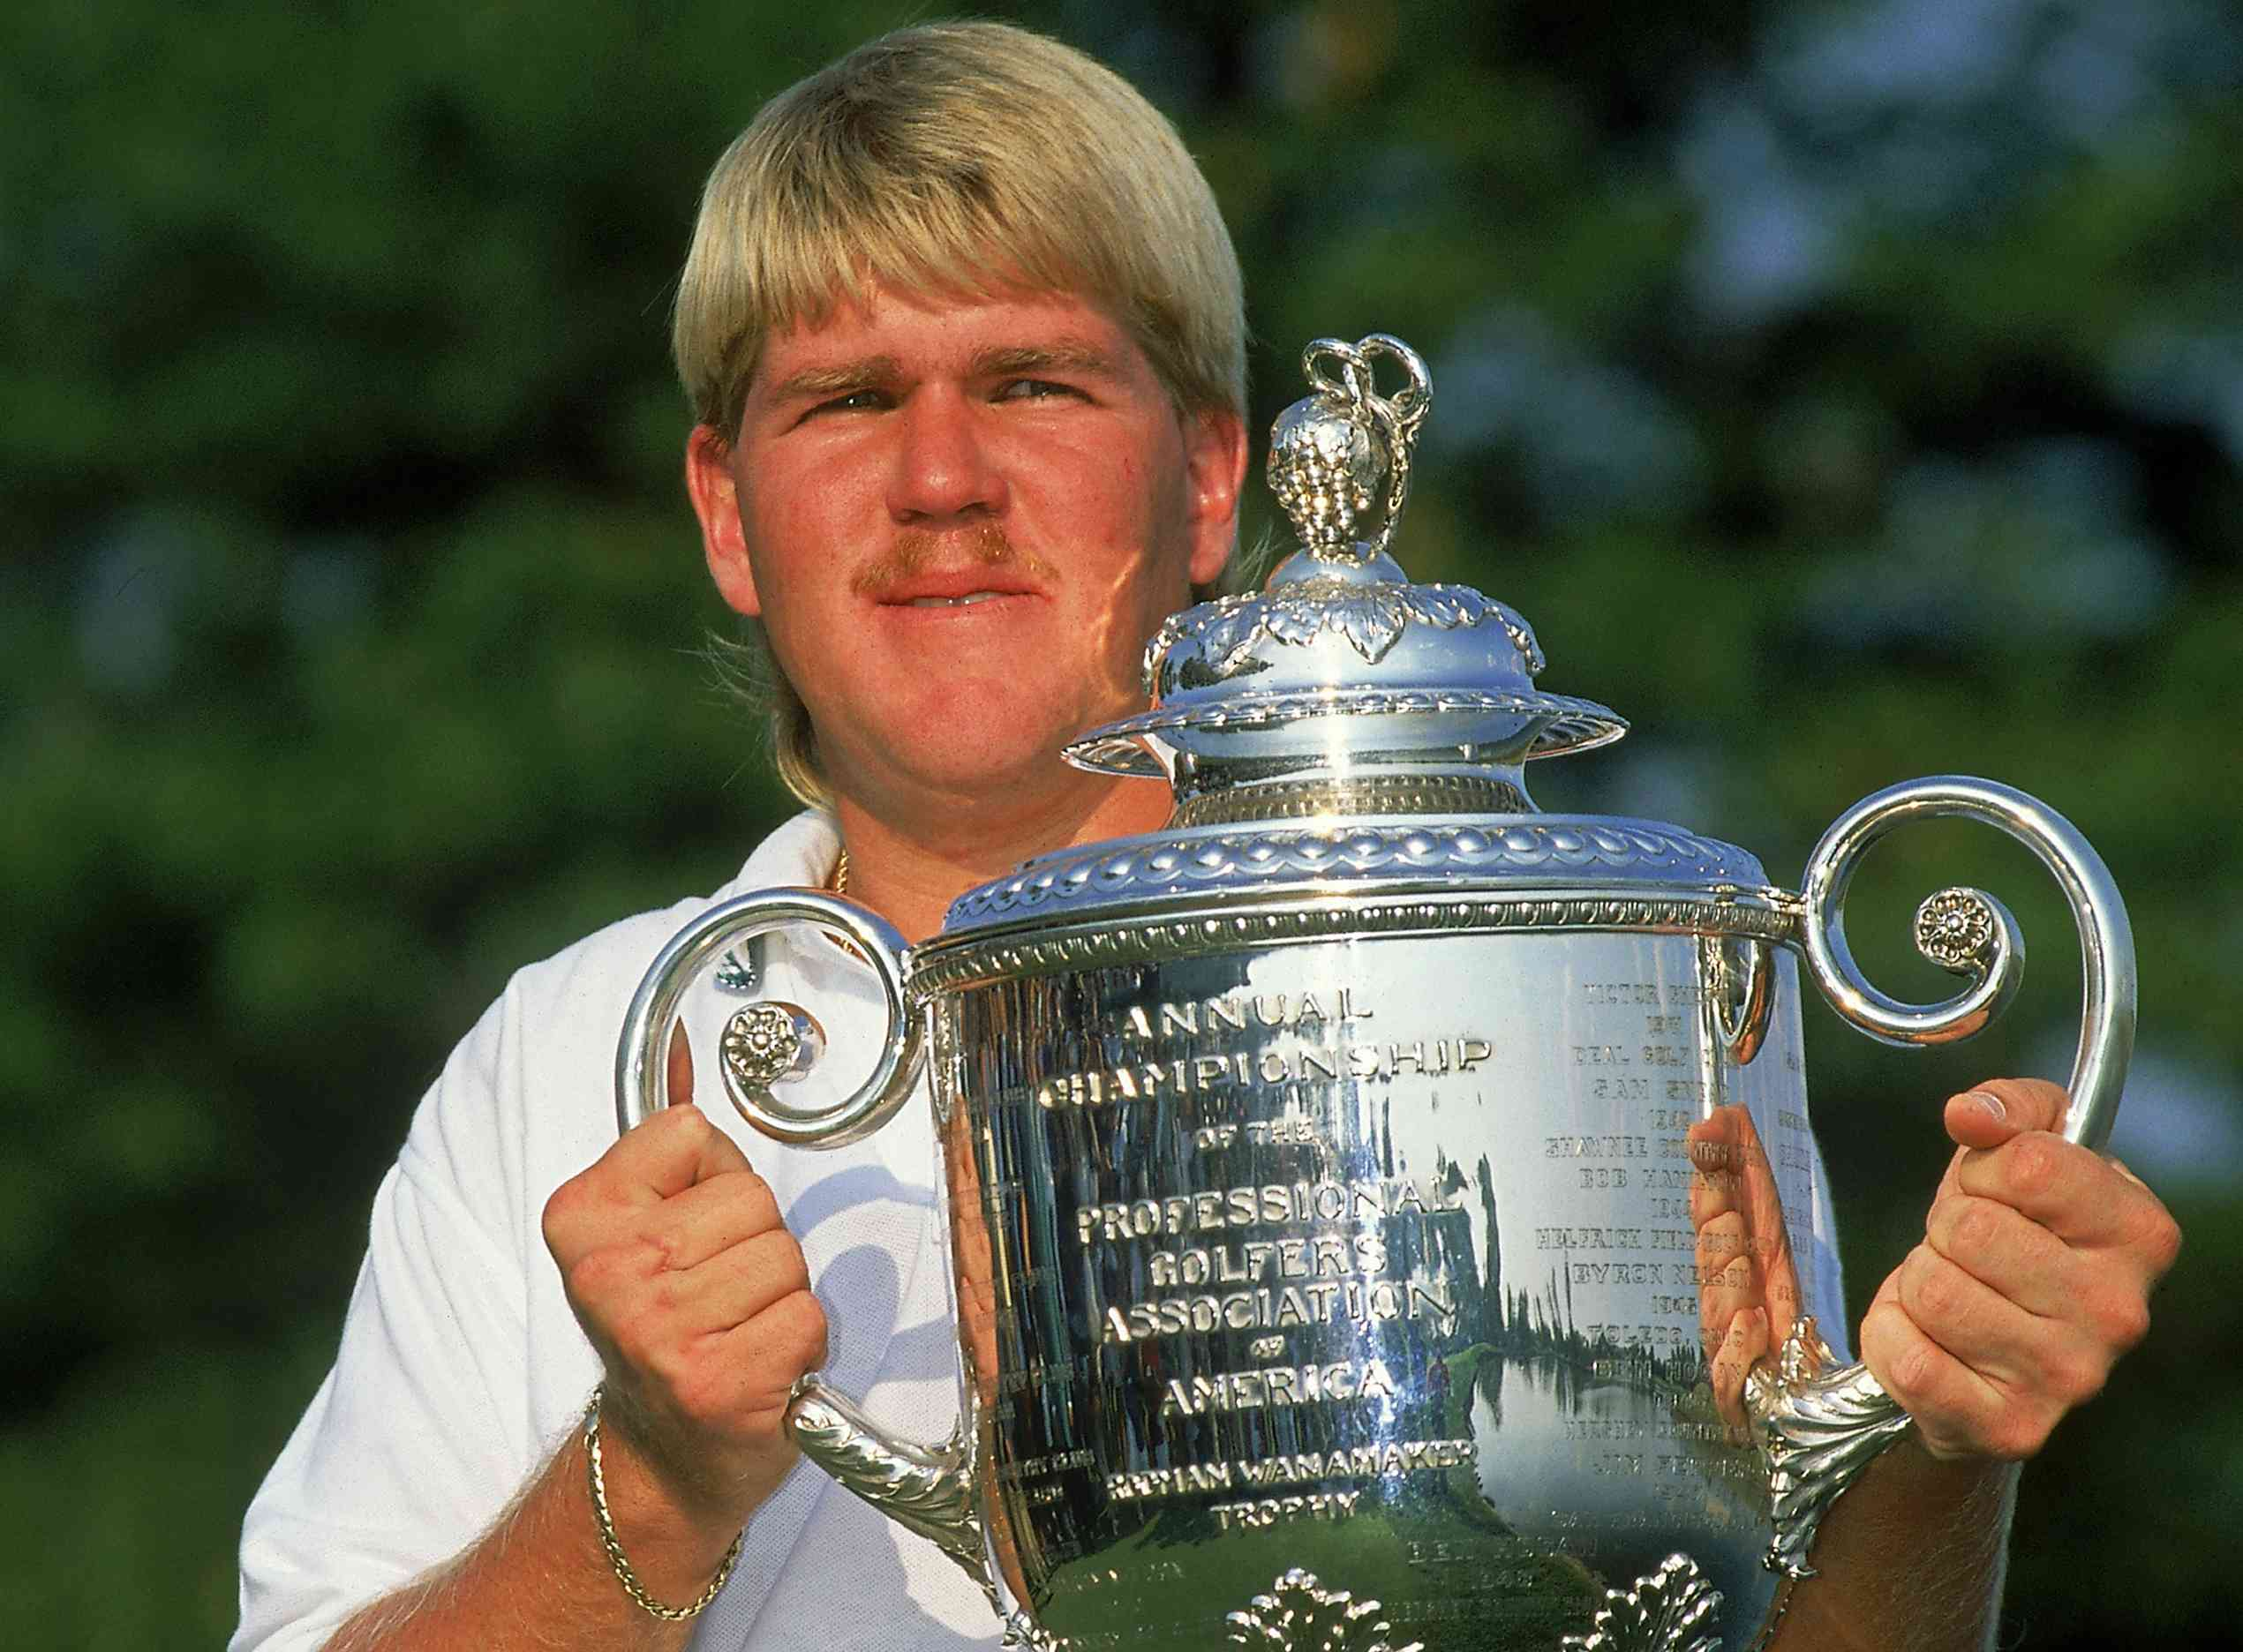 John Daly of the USA holds the trophy after winning the USPGA Championship at Crooked Stick in Carmel, Indiana, USA in August 1991.